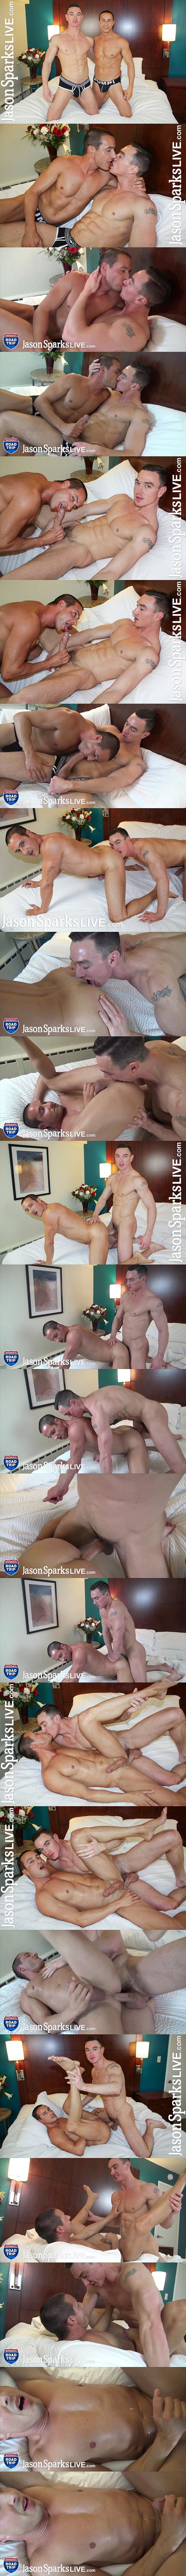 Hung gay porn star Cade Maddox barebacks Nick Ford in several positions before he fucks the cum out of Nick in Chicago at Jasonsparkslive 01